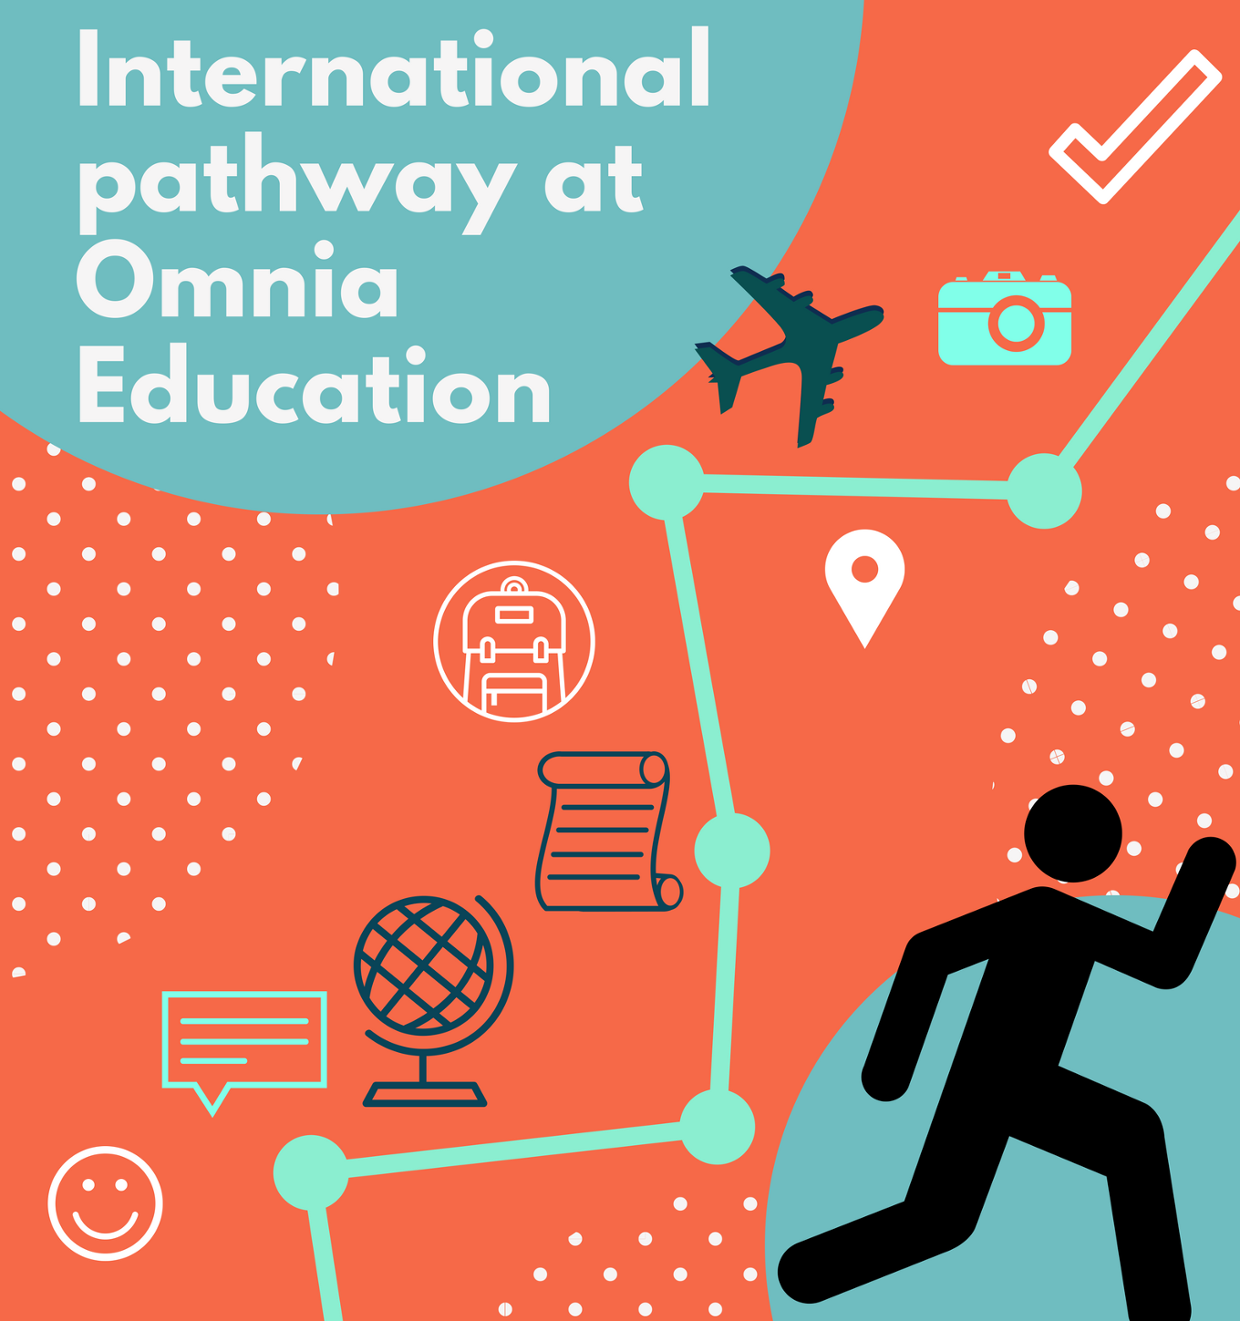 The international pathway at Omnia